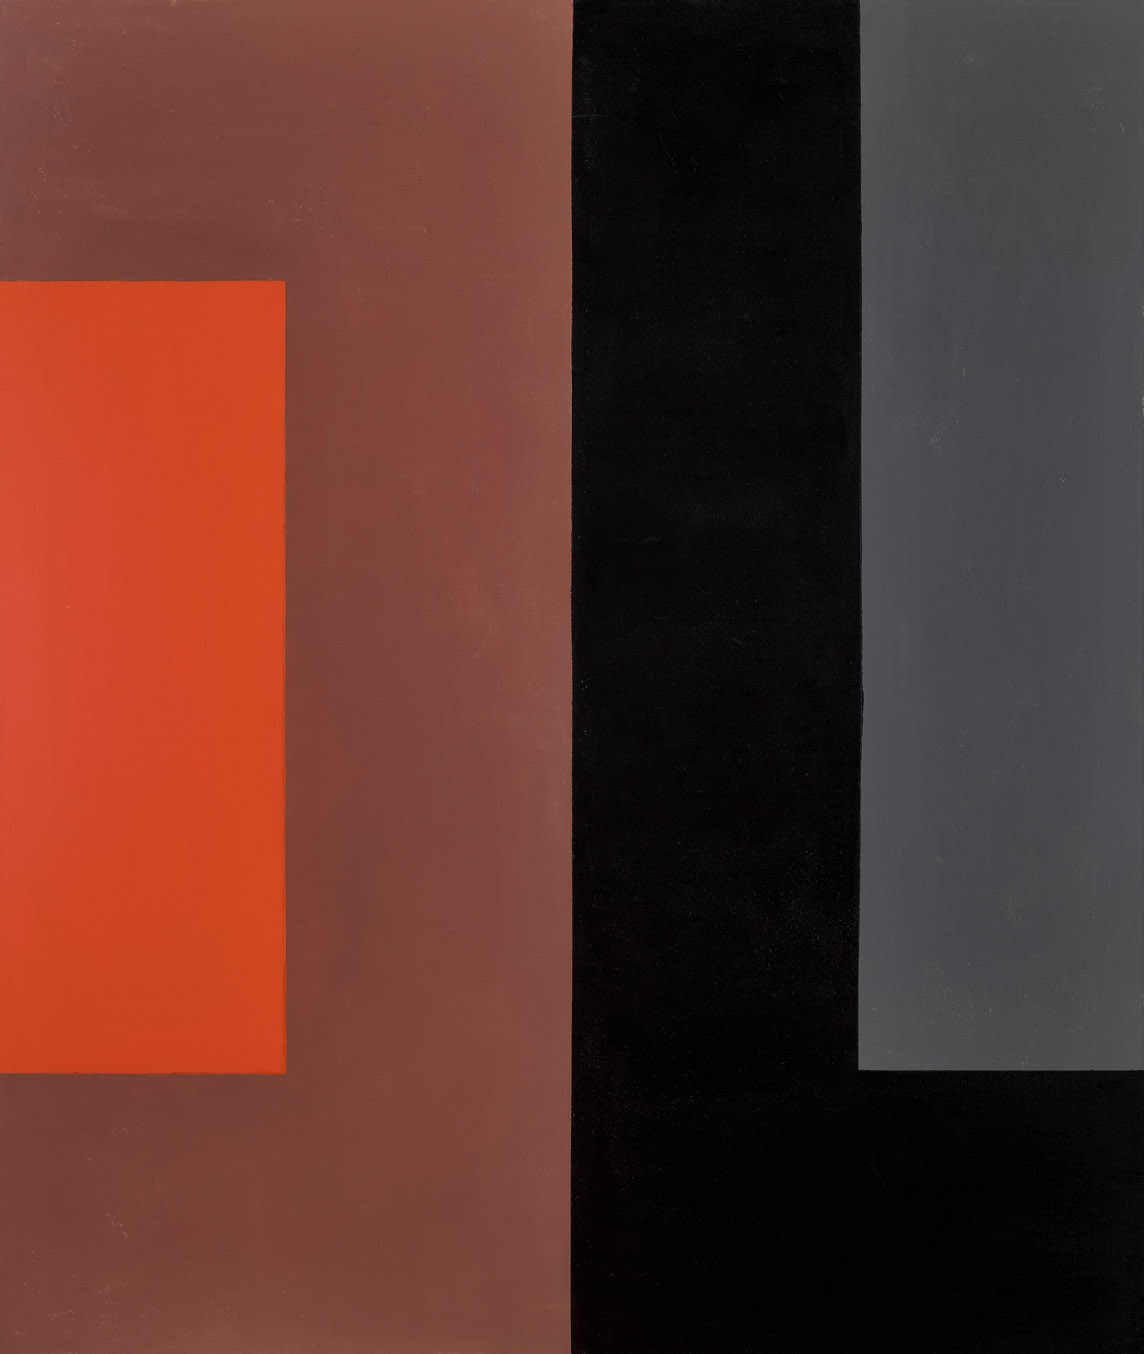 Untitled, Dichotomic Organization , 1961  oil on canvas 60 x 50 inches; 152.4 x 127 centimeters